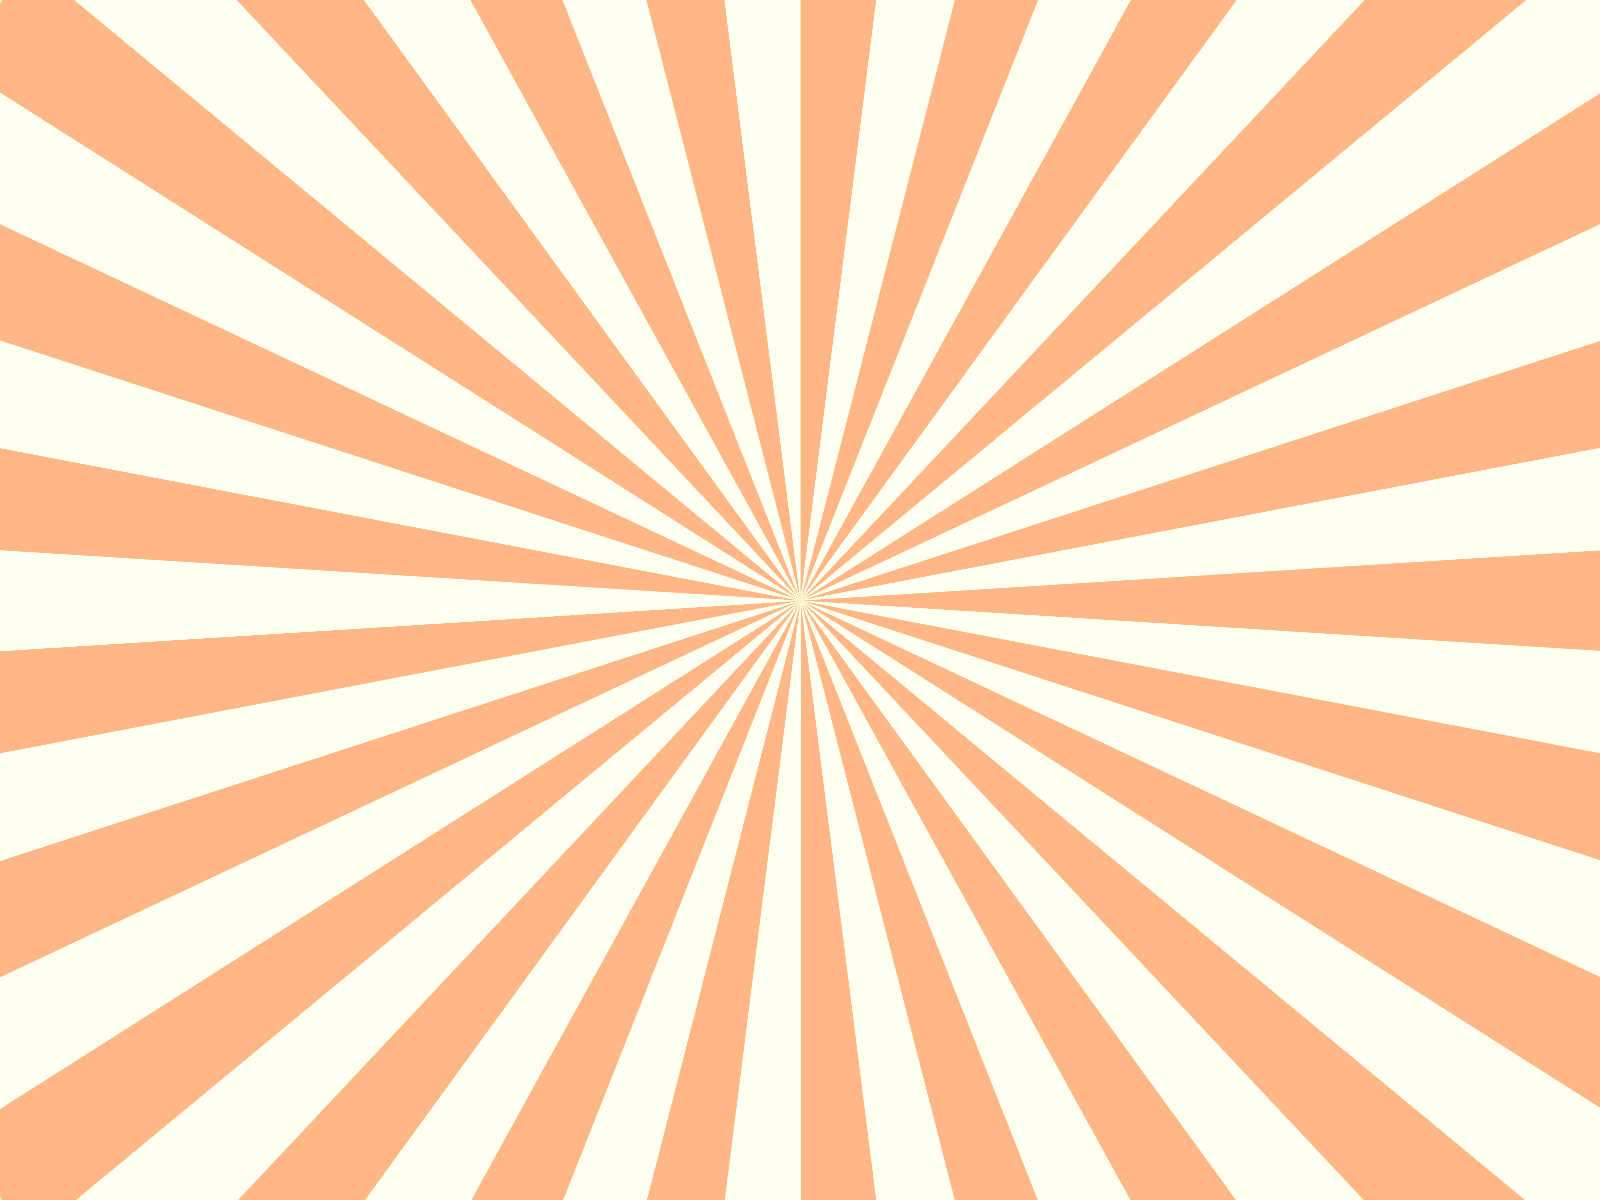 Trippy vector background. Orange stripes by spooky